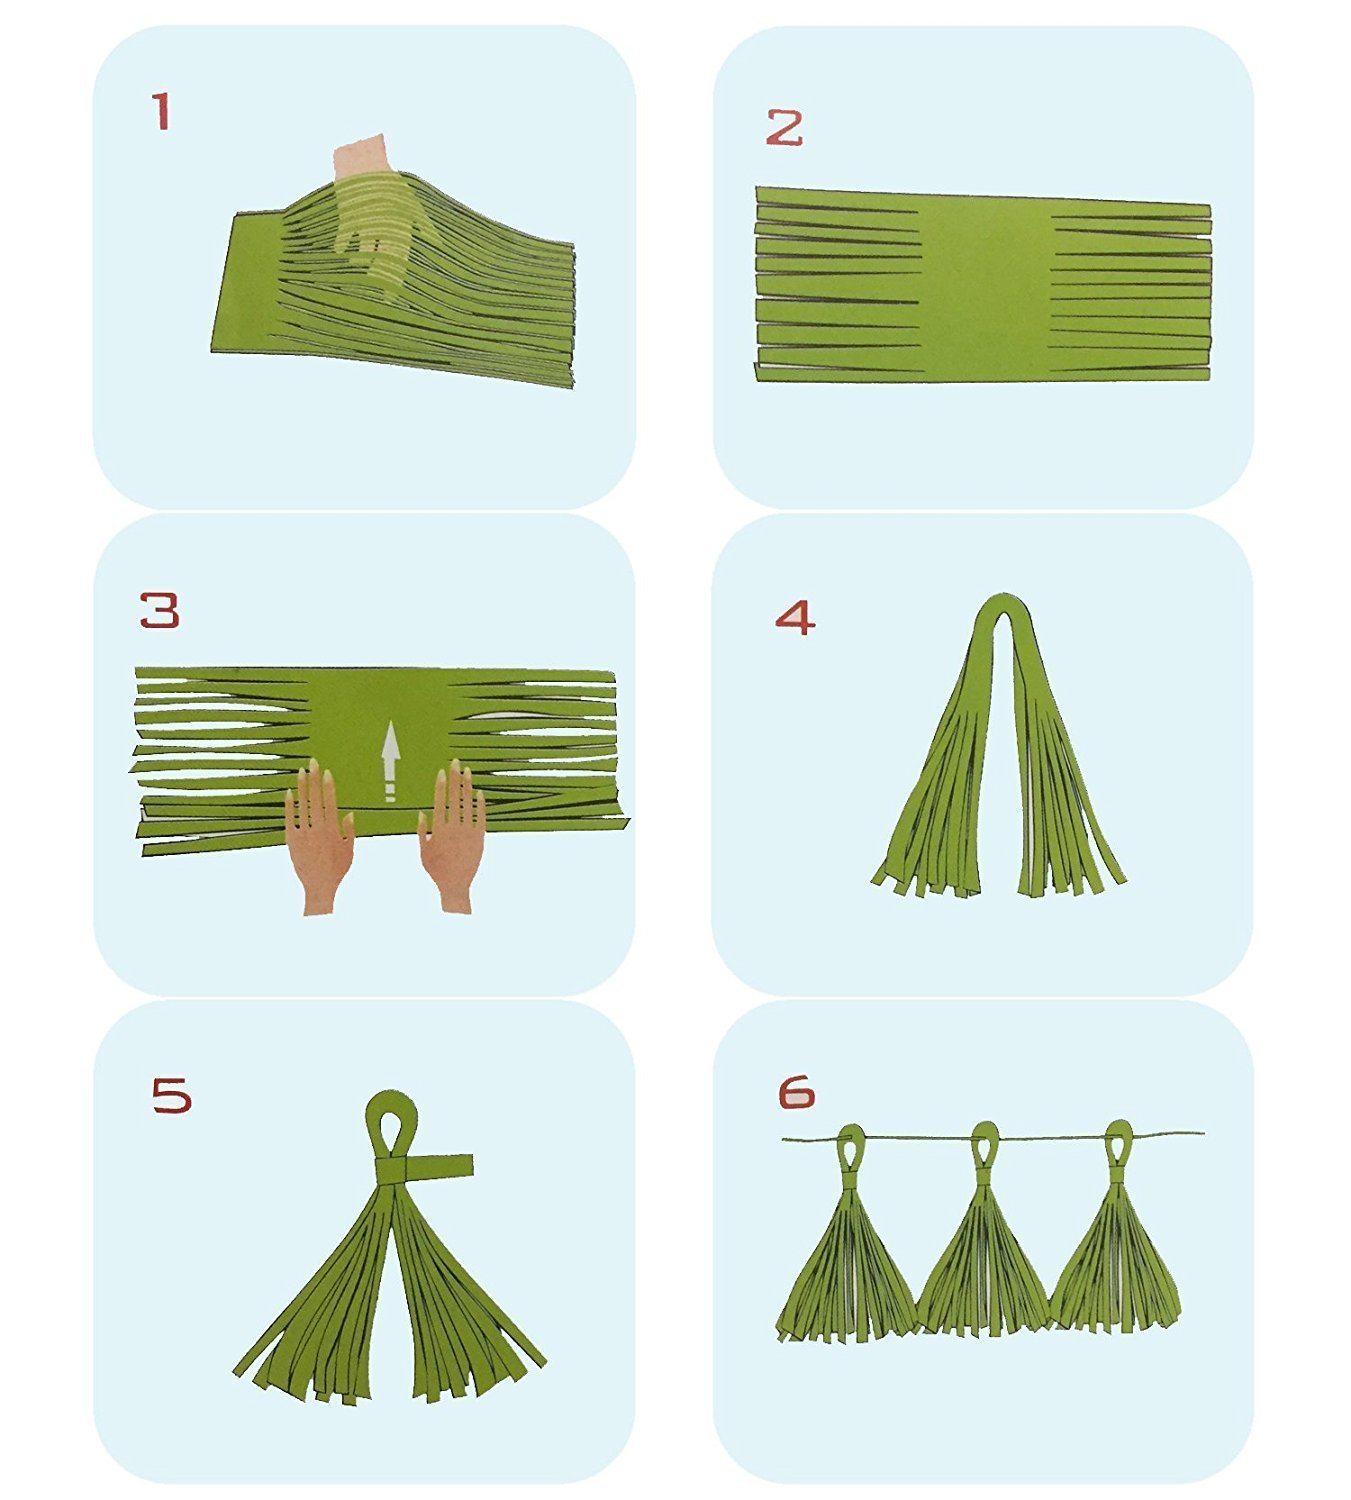 NICROLANDEE 8 Pcs Tropical Glitter Gold Pineapples Bunting Banner Tropical Fruit Garland & 10 Pcs Green Tassel Garland for Luau Wedding Birthday Summer Hawaii Party Decorations